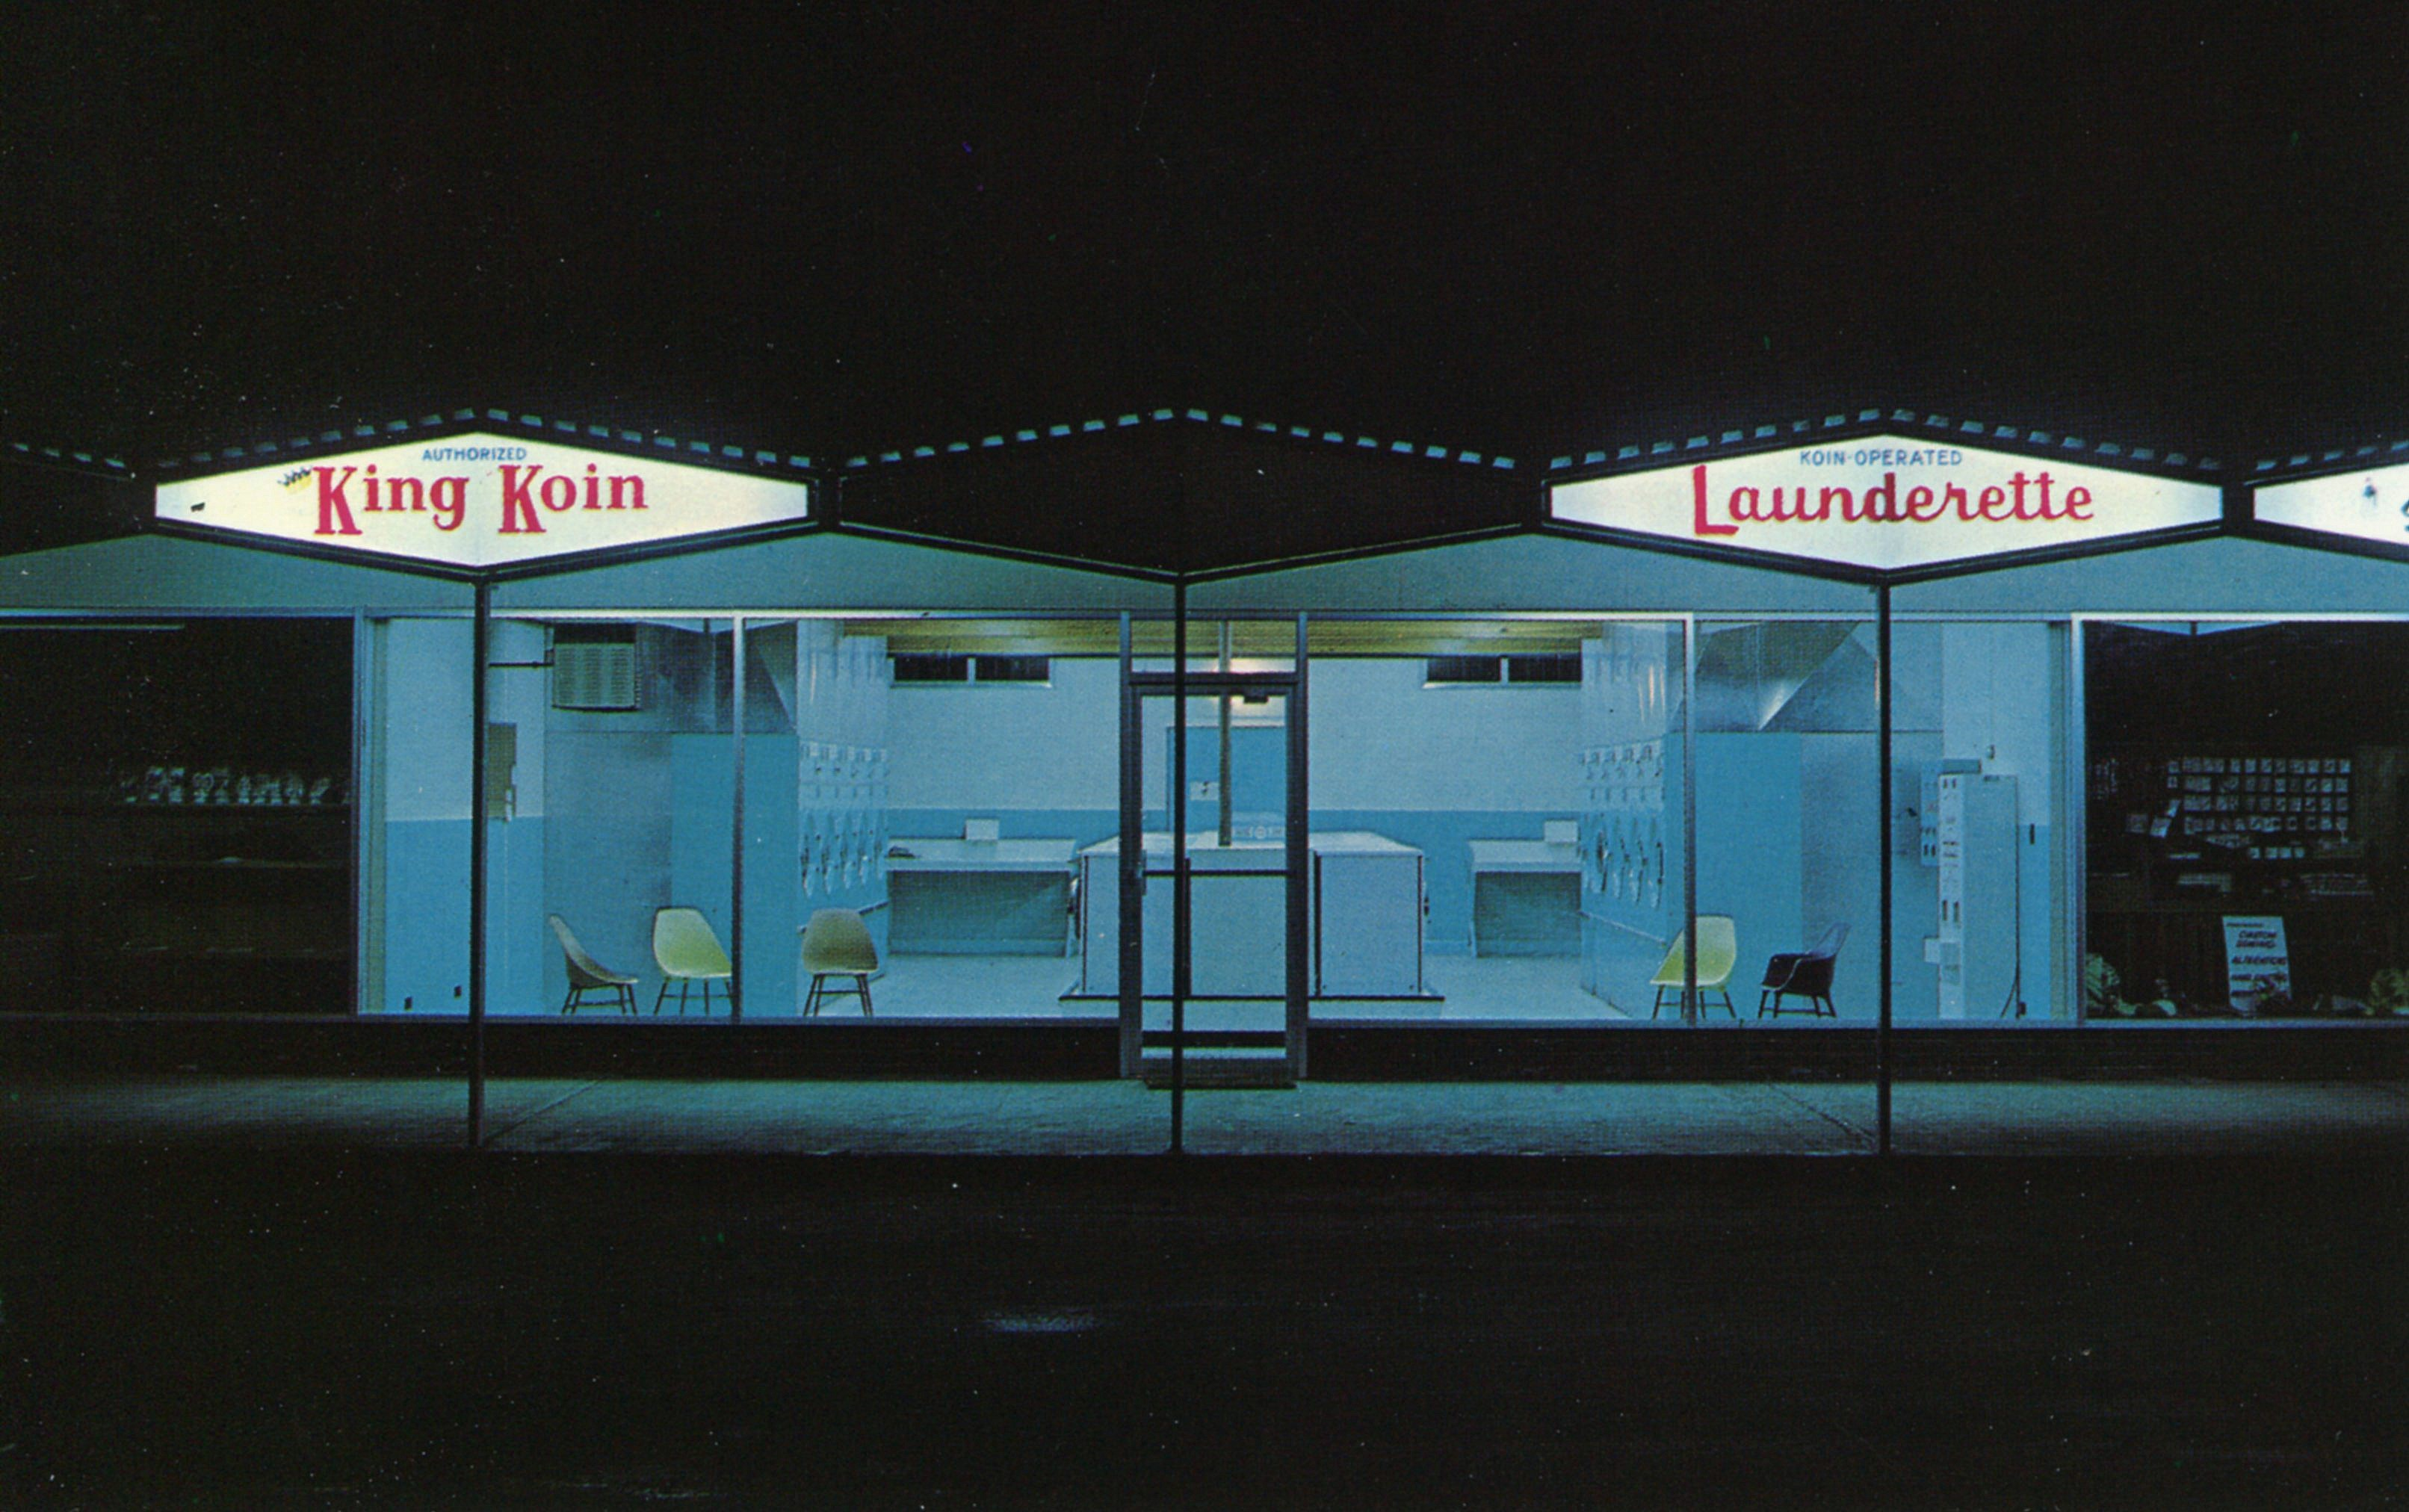 King Koin Launderette - Kelowna, British Columbia, Canada - date unknown